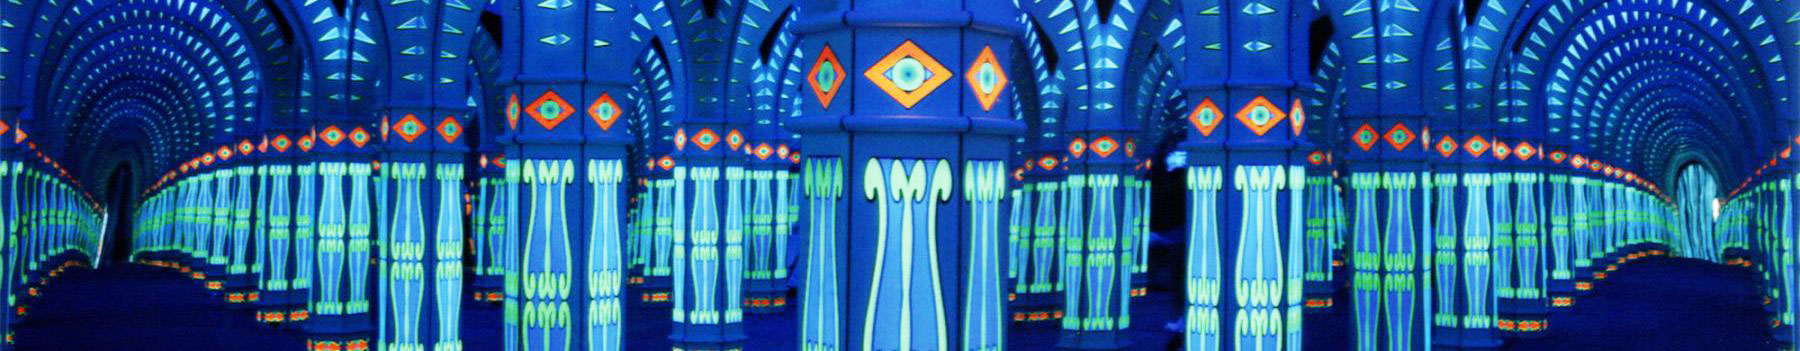 Fun Mirror Maze Attraction in Gatlinburg